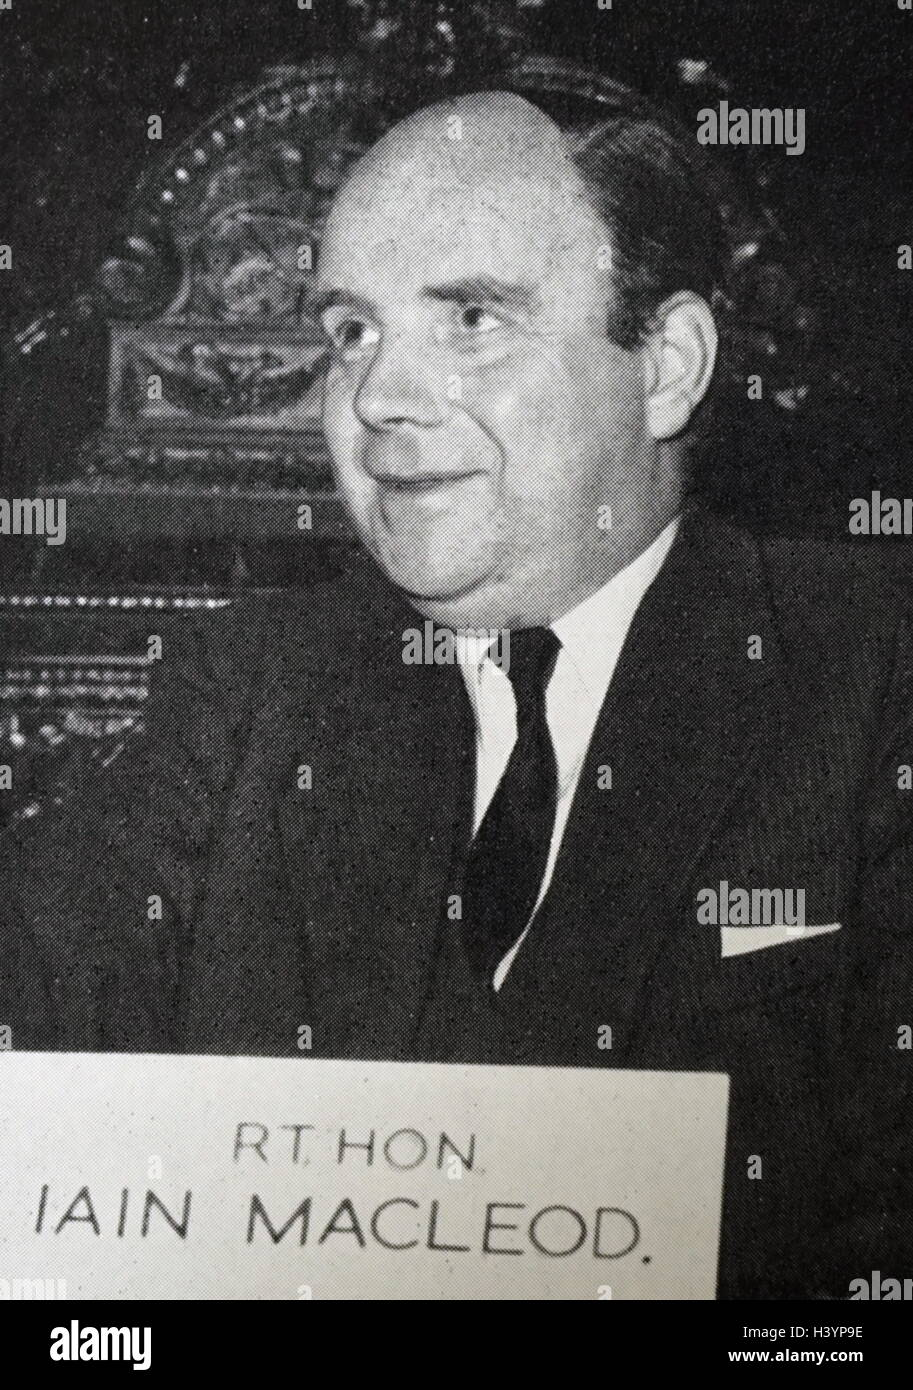 Photograph of Iain Macleod (1913-1970) a British Conservative Party politician and government minister. Dated 20th - Stock Image